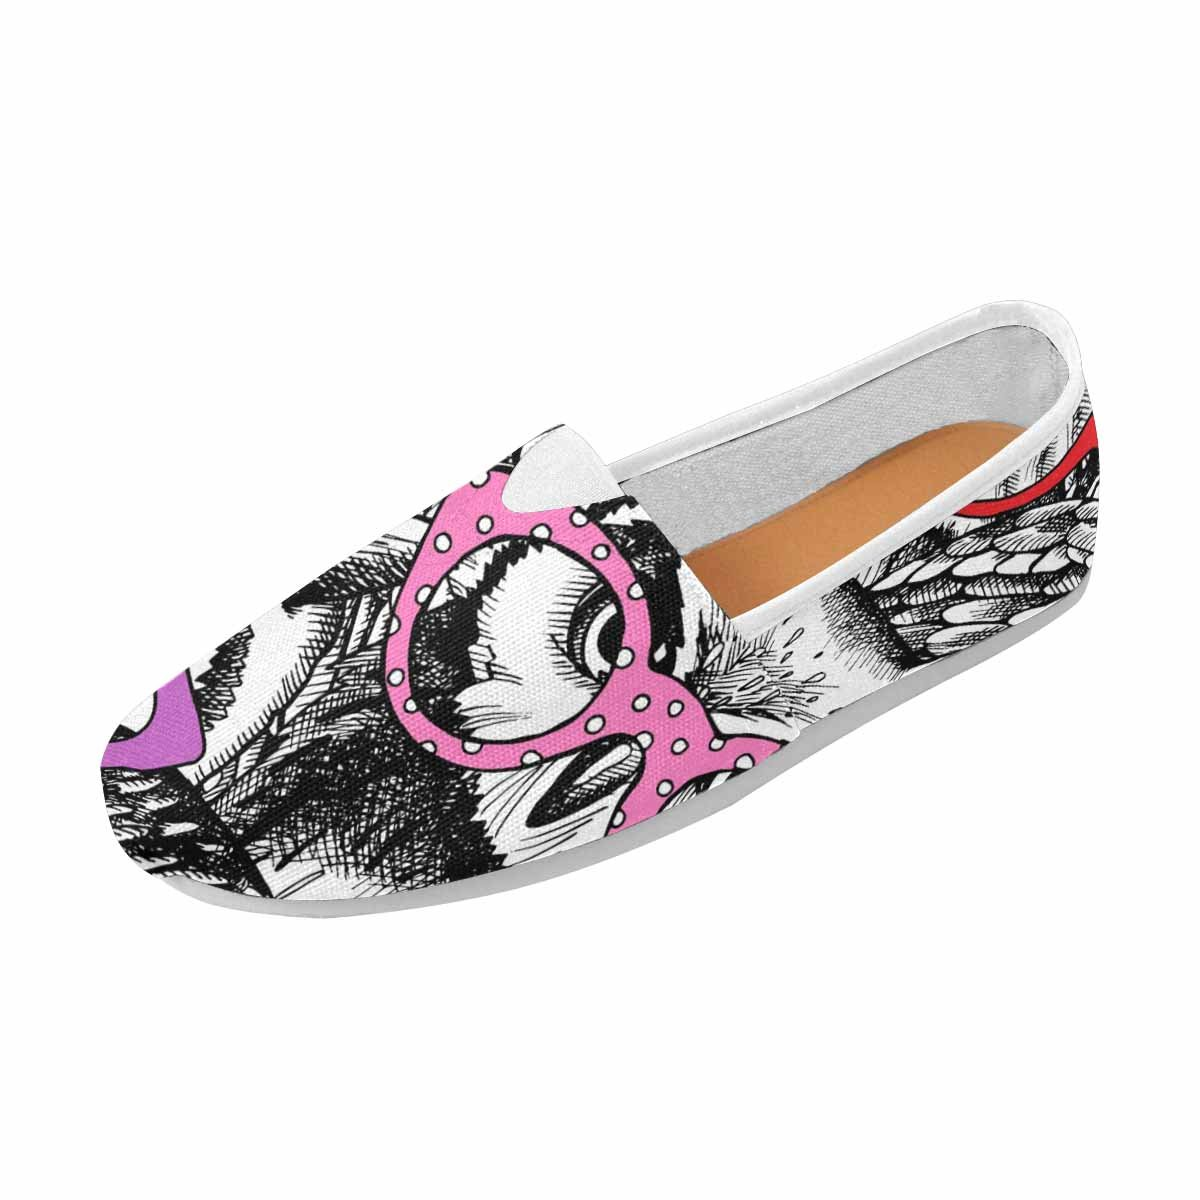 InterestPrint Women's Loafers Classic Casual Canvas Slip On Shoes Sneakers Flats 6 B(M) US Owls in Glasses